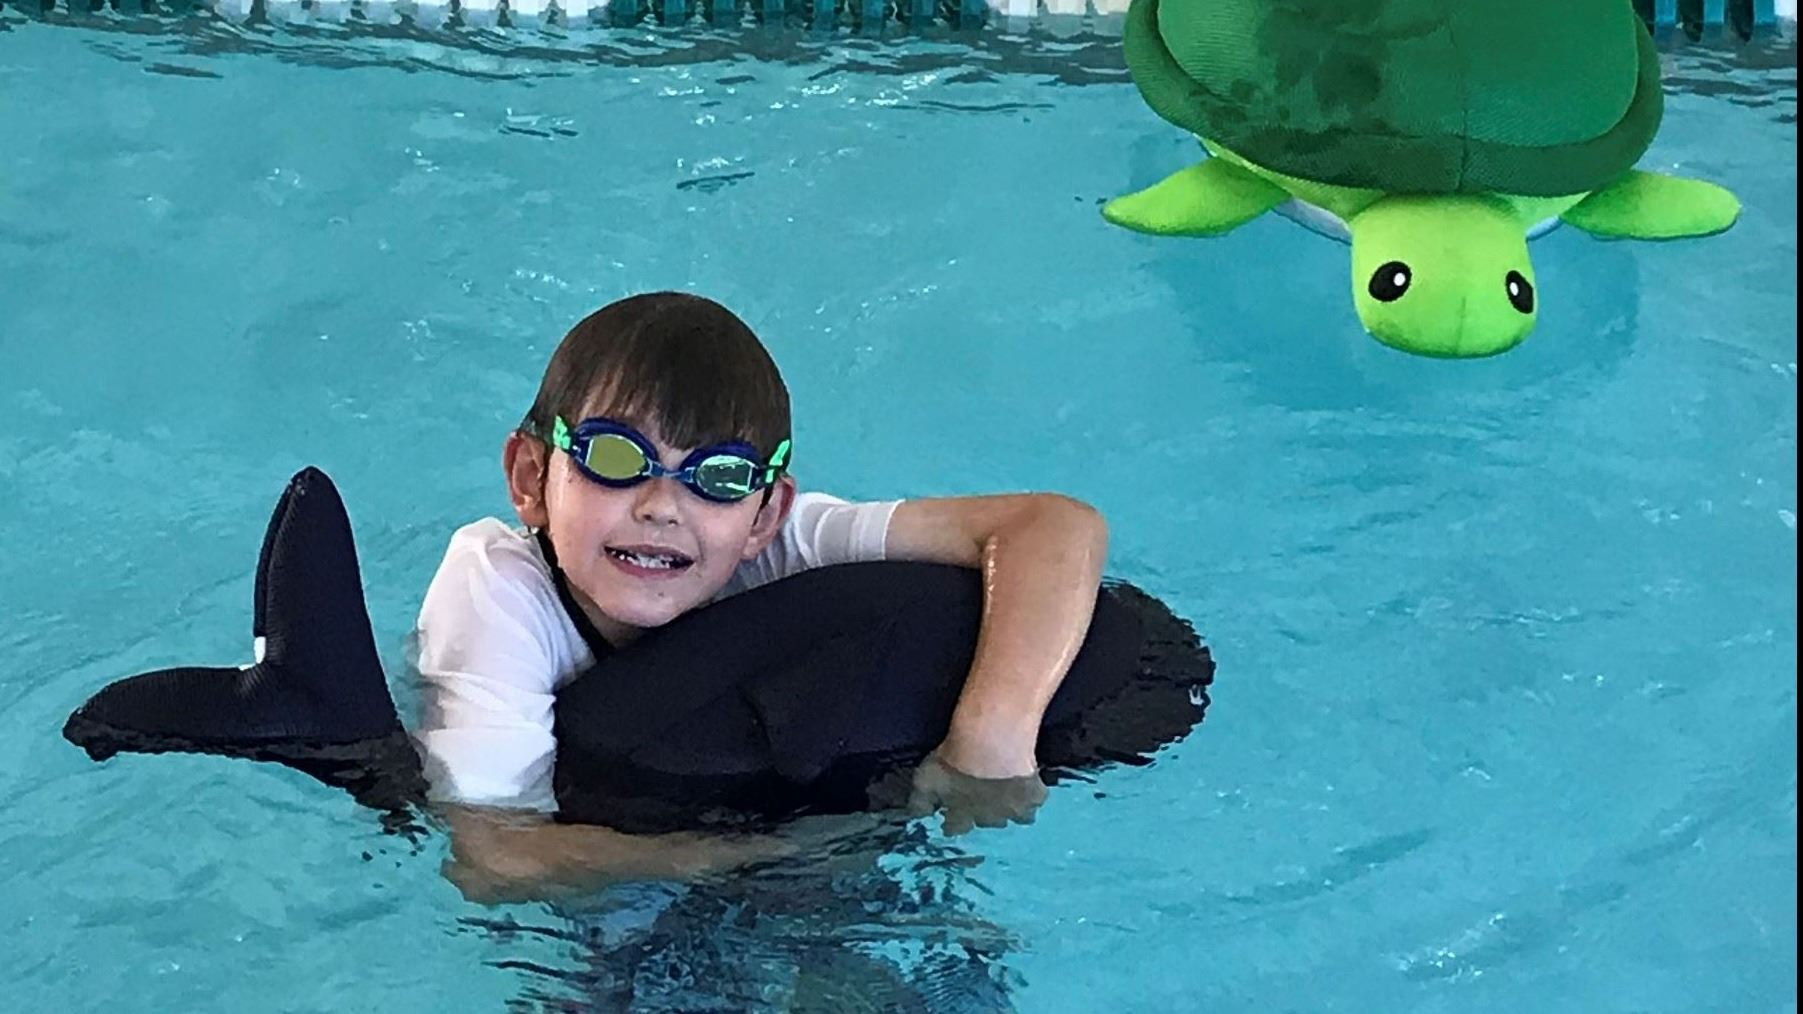 Adaptive Swimming student with floaty animals in the pool